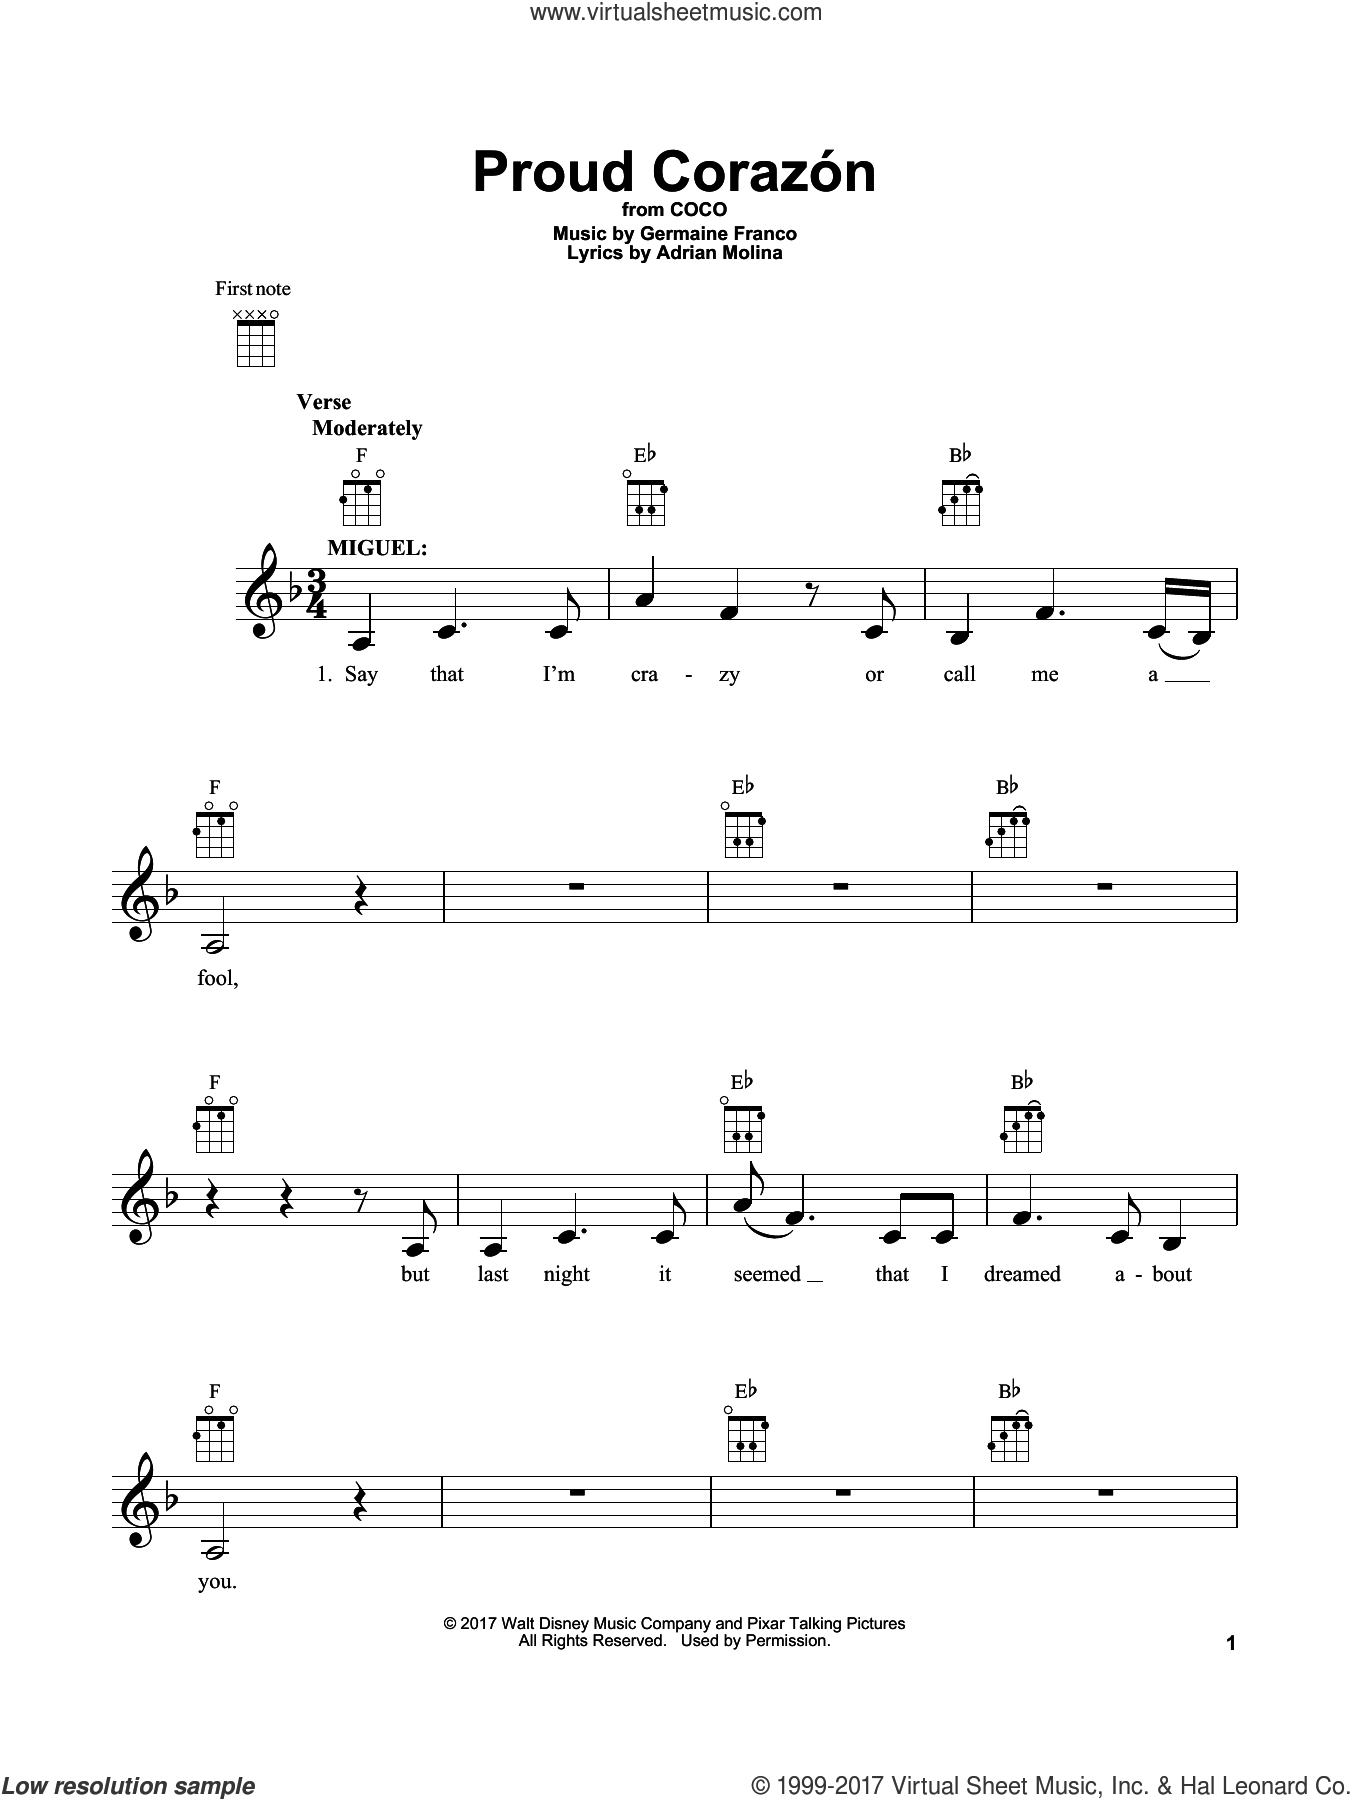 Proud Corazon sheet music for ukulele by Adrian Molina, Coco (Movie) and Germaine Franco, intermediate skill level